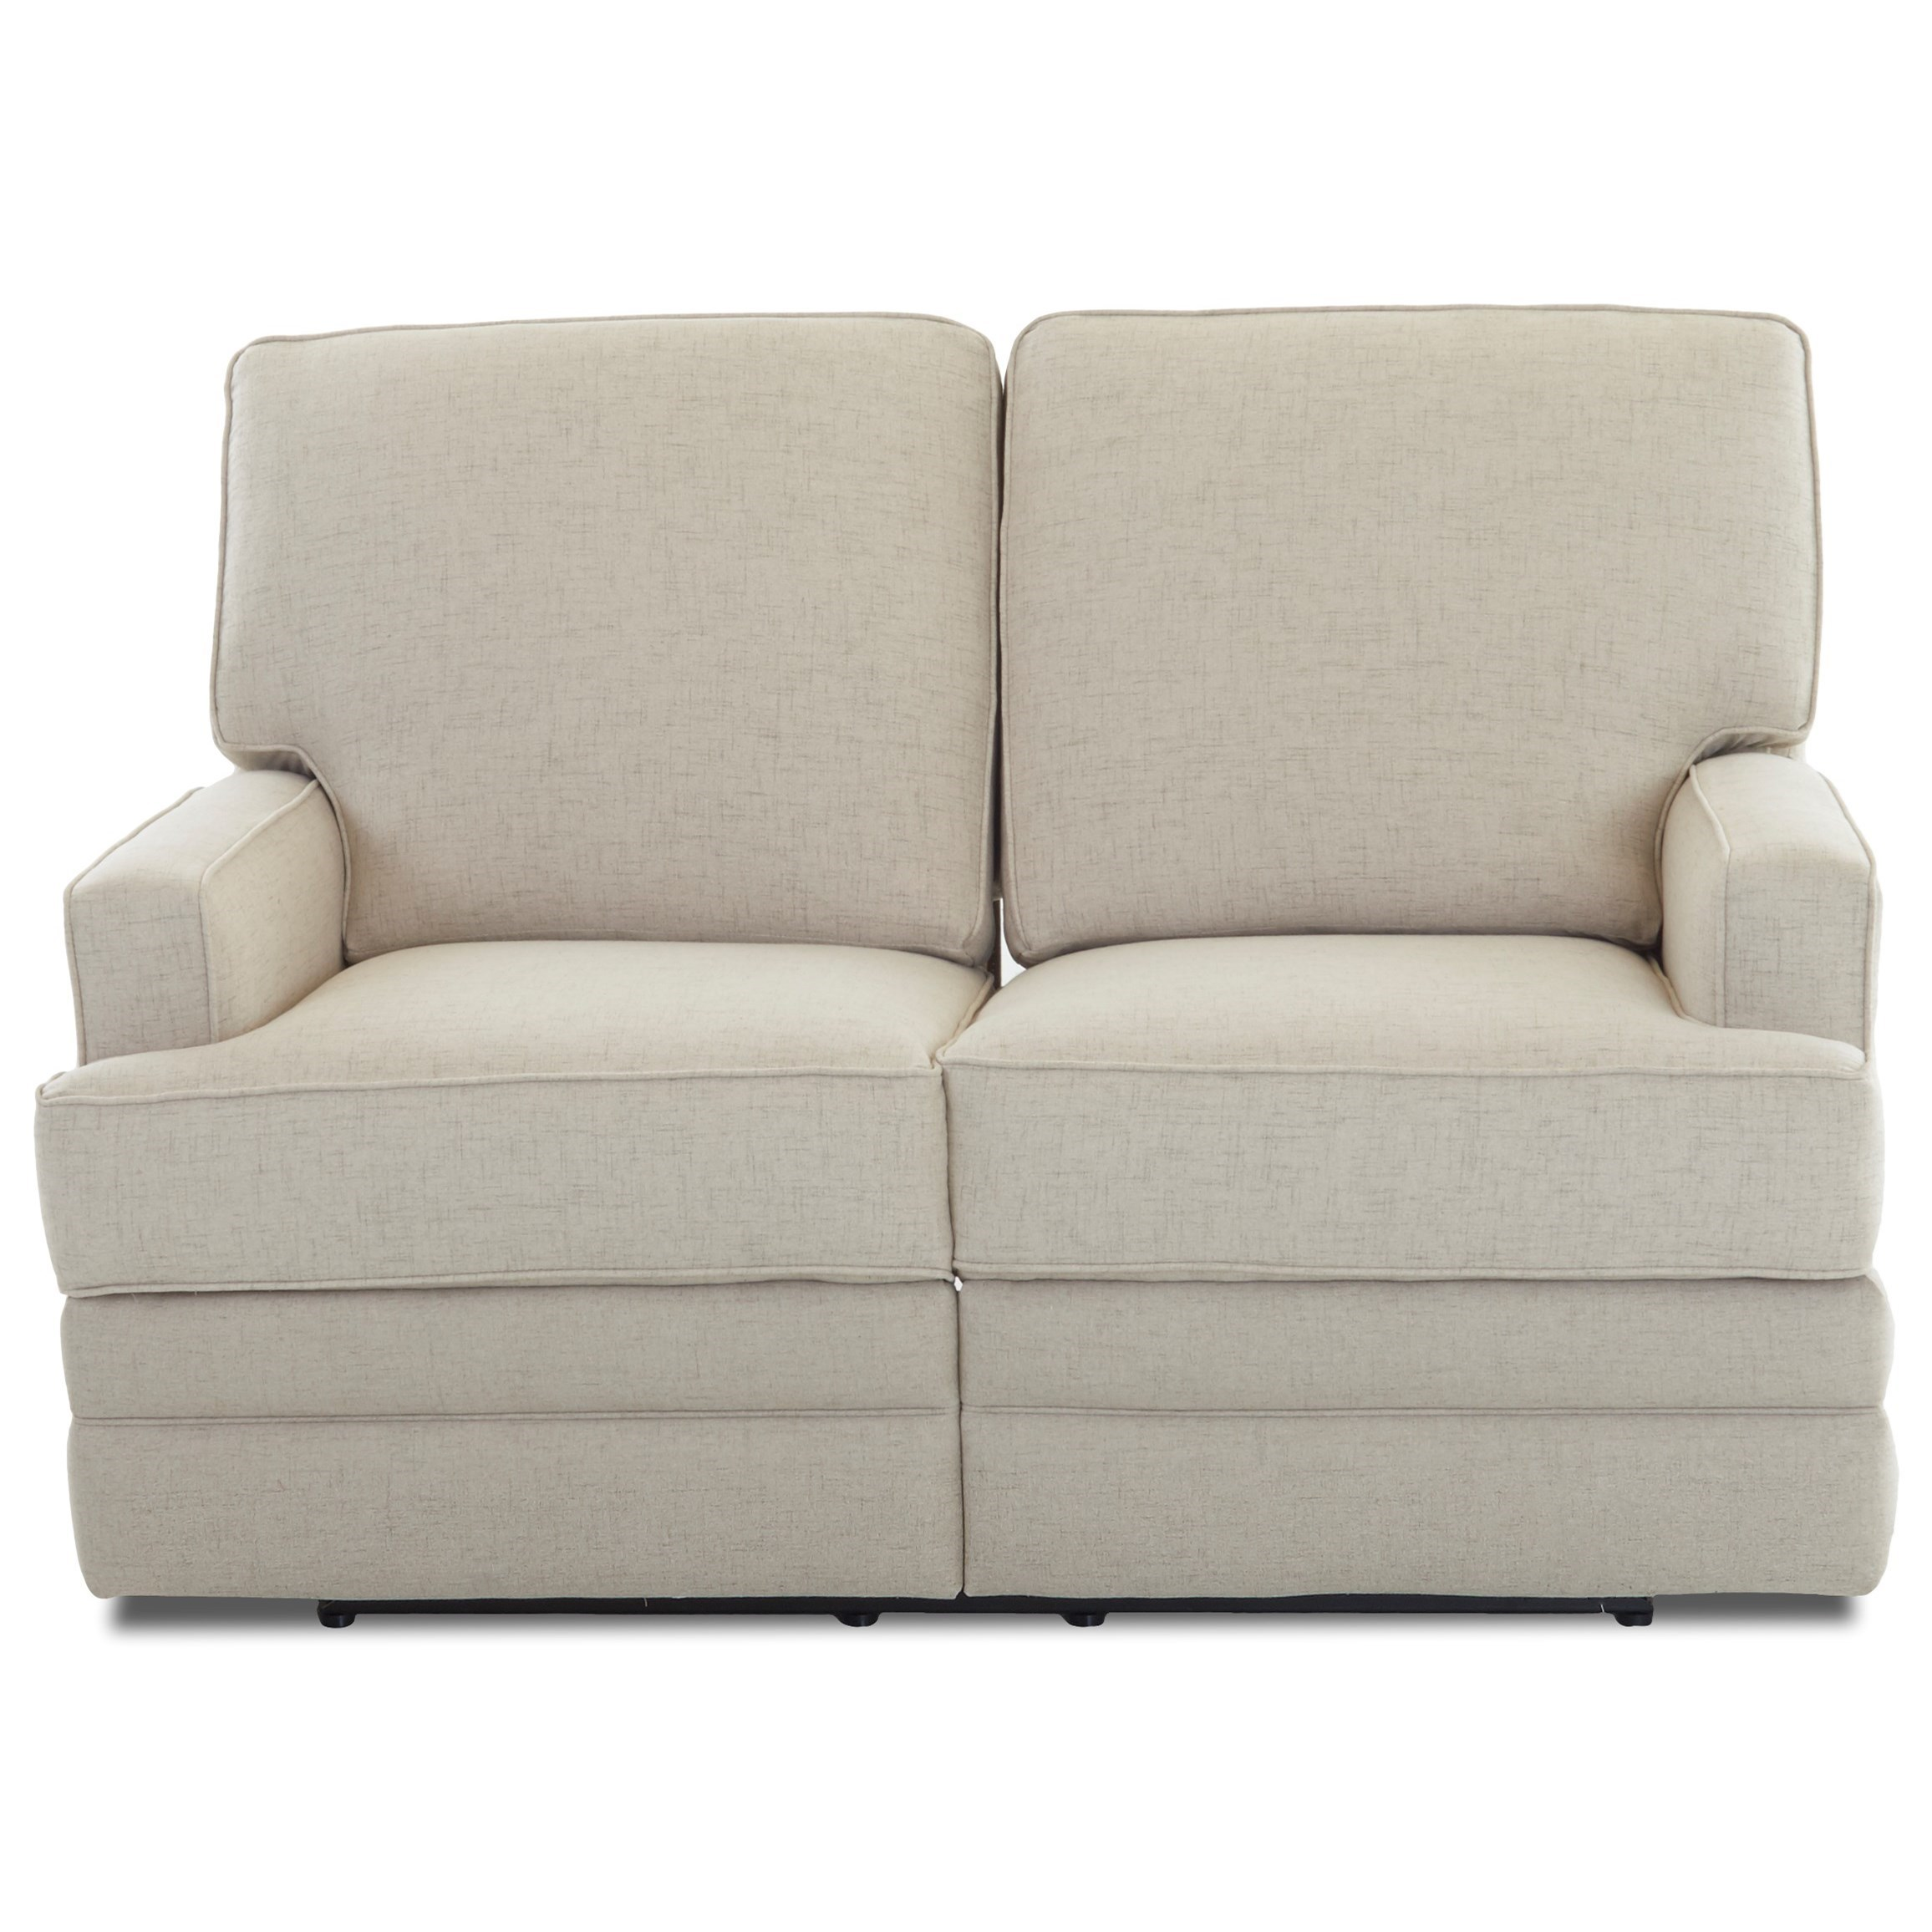 Klaussner Chapman 78203 Rls Casual Reclining Loveseat Dunk Bright Furniture Reclining Love